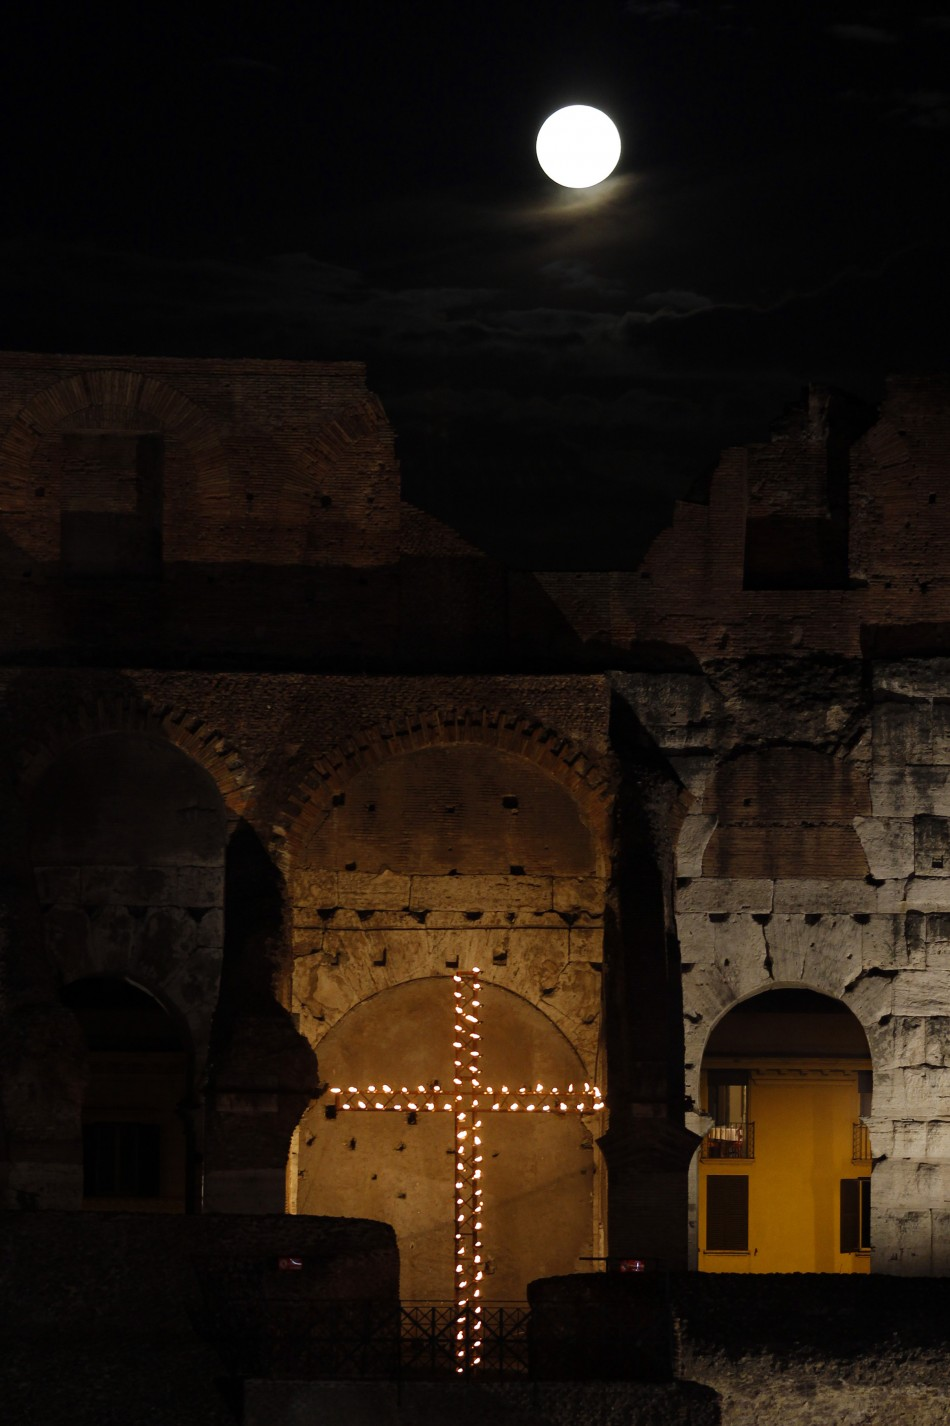 The full moon raises over the Colosseum before the Via Crucis Way of the Cross procession in downtown Rome